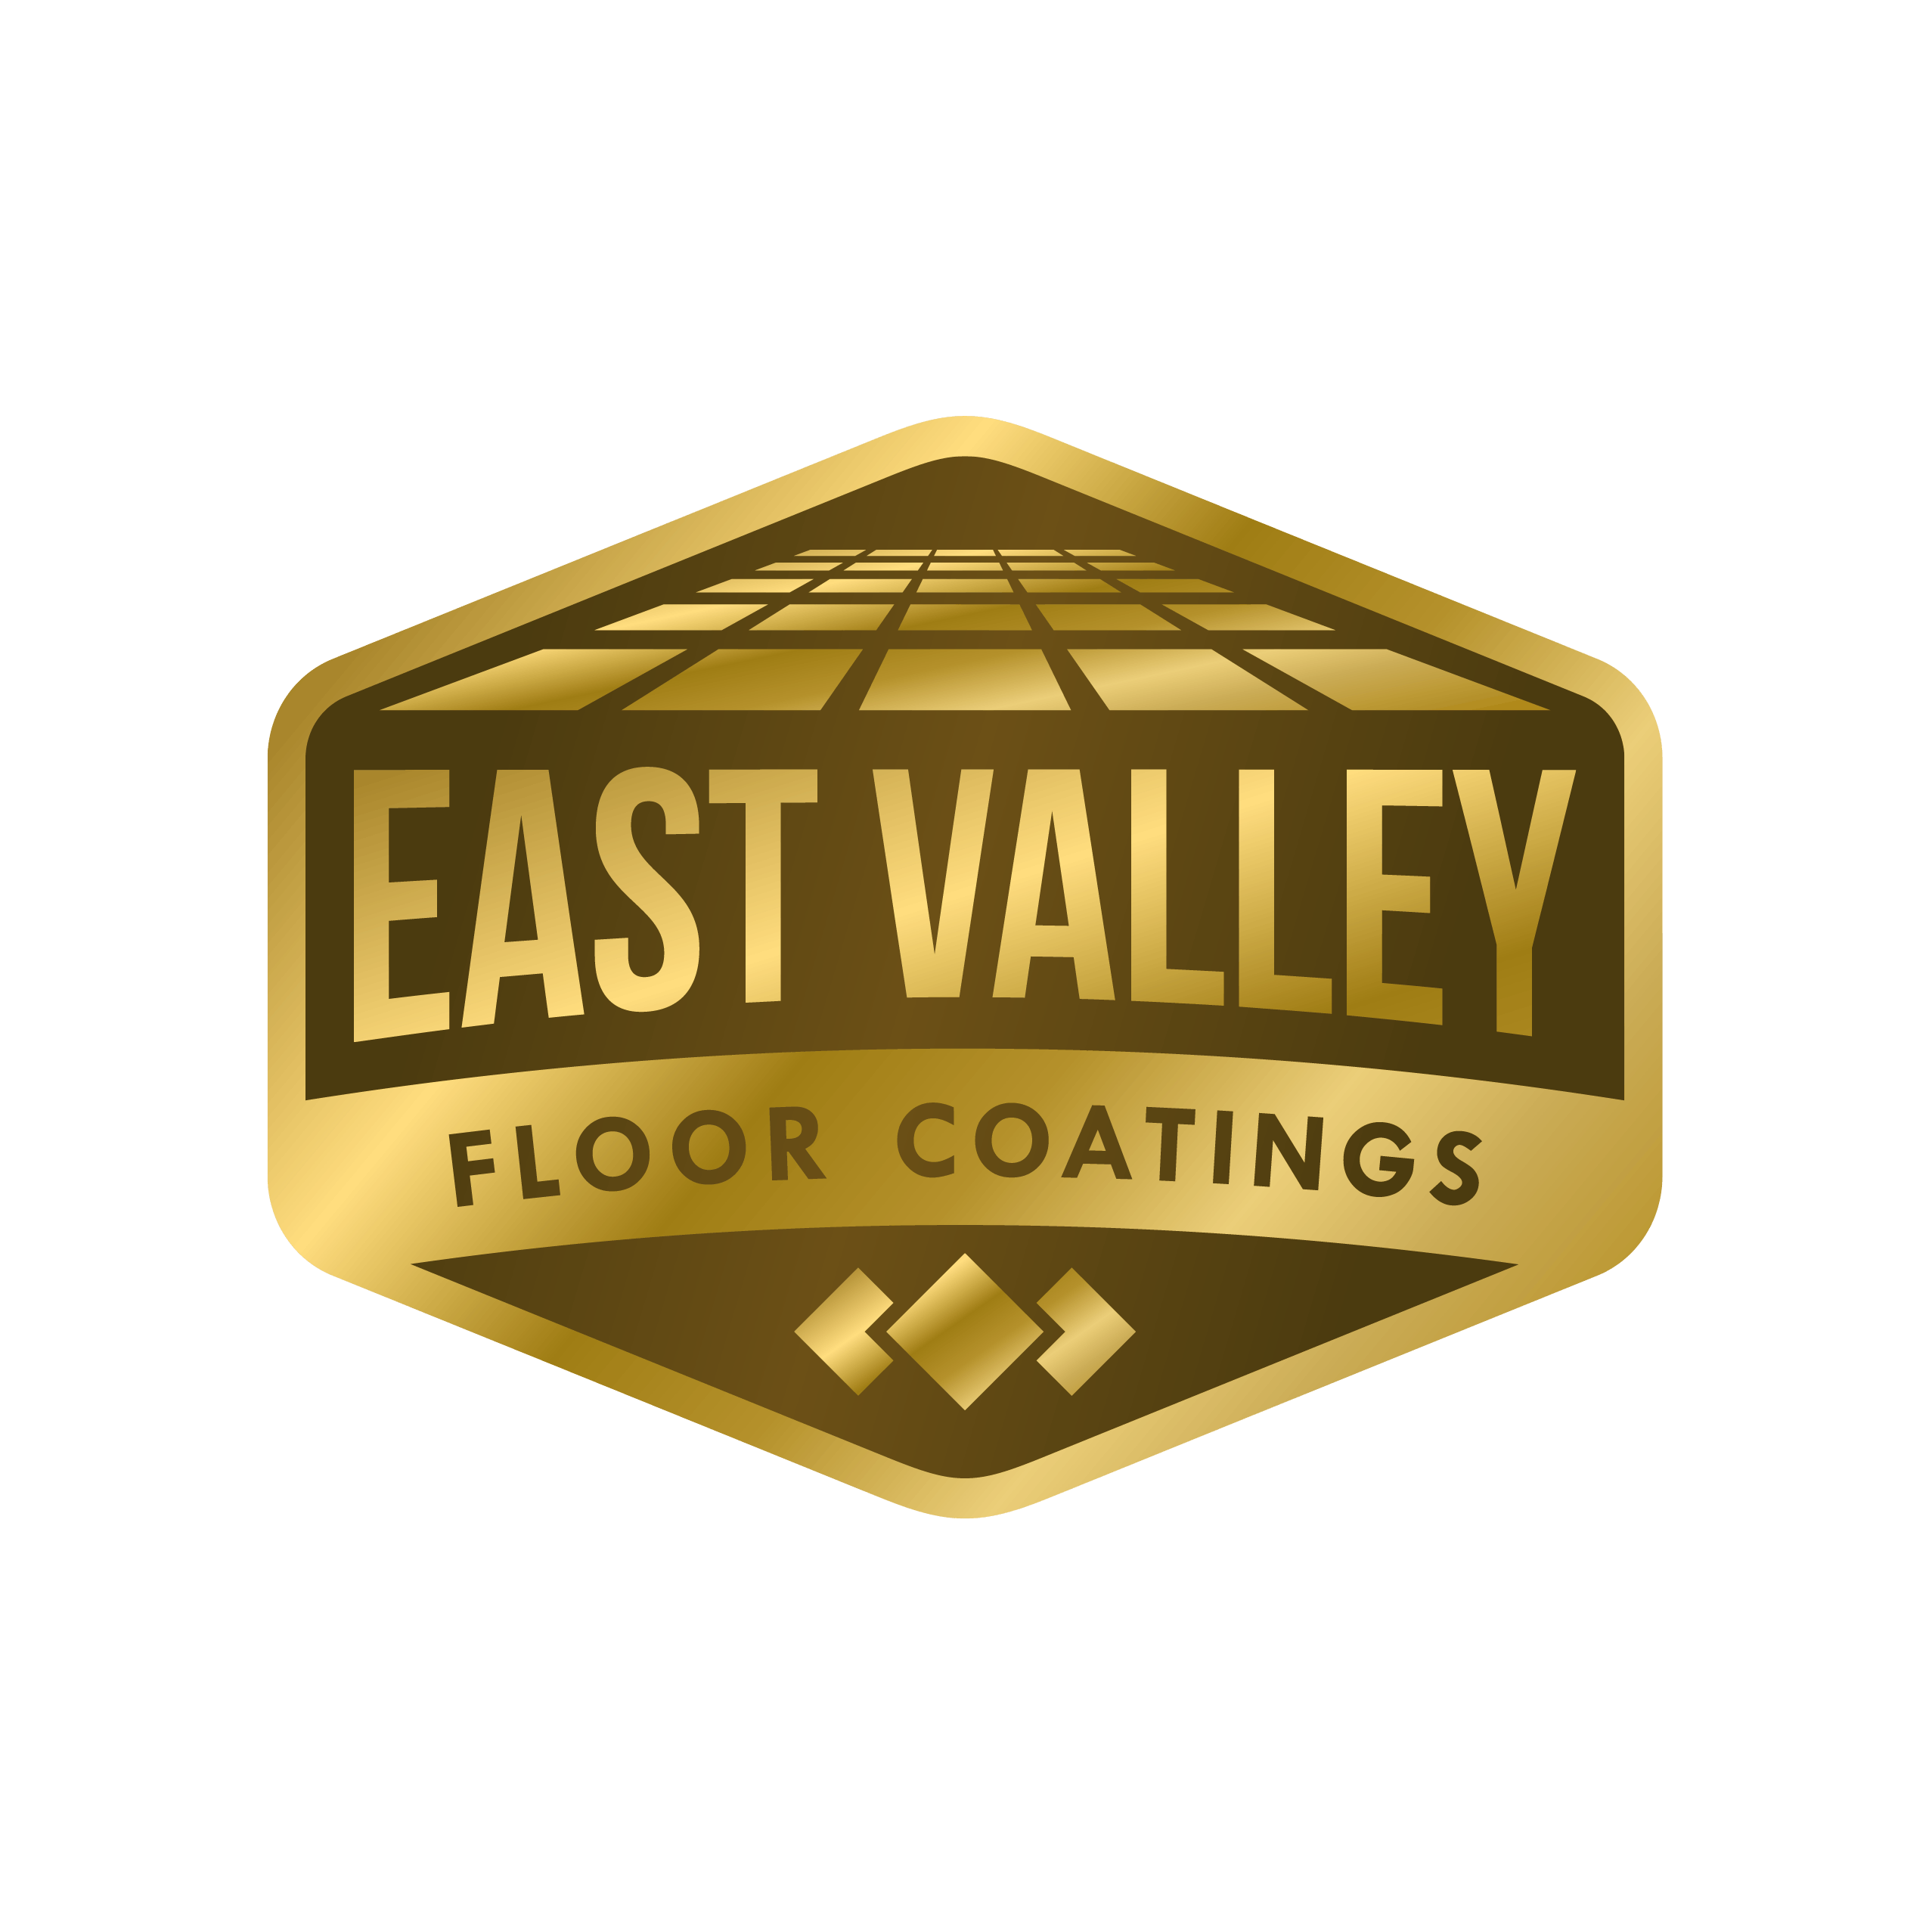 East Valley Floor Coatings logo